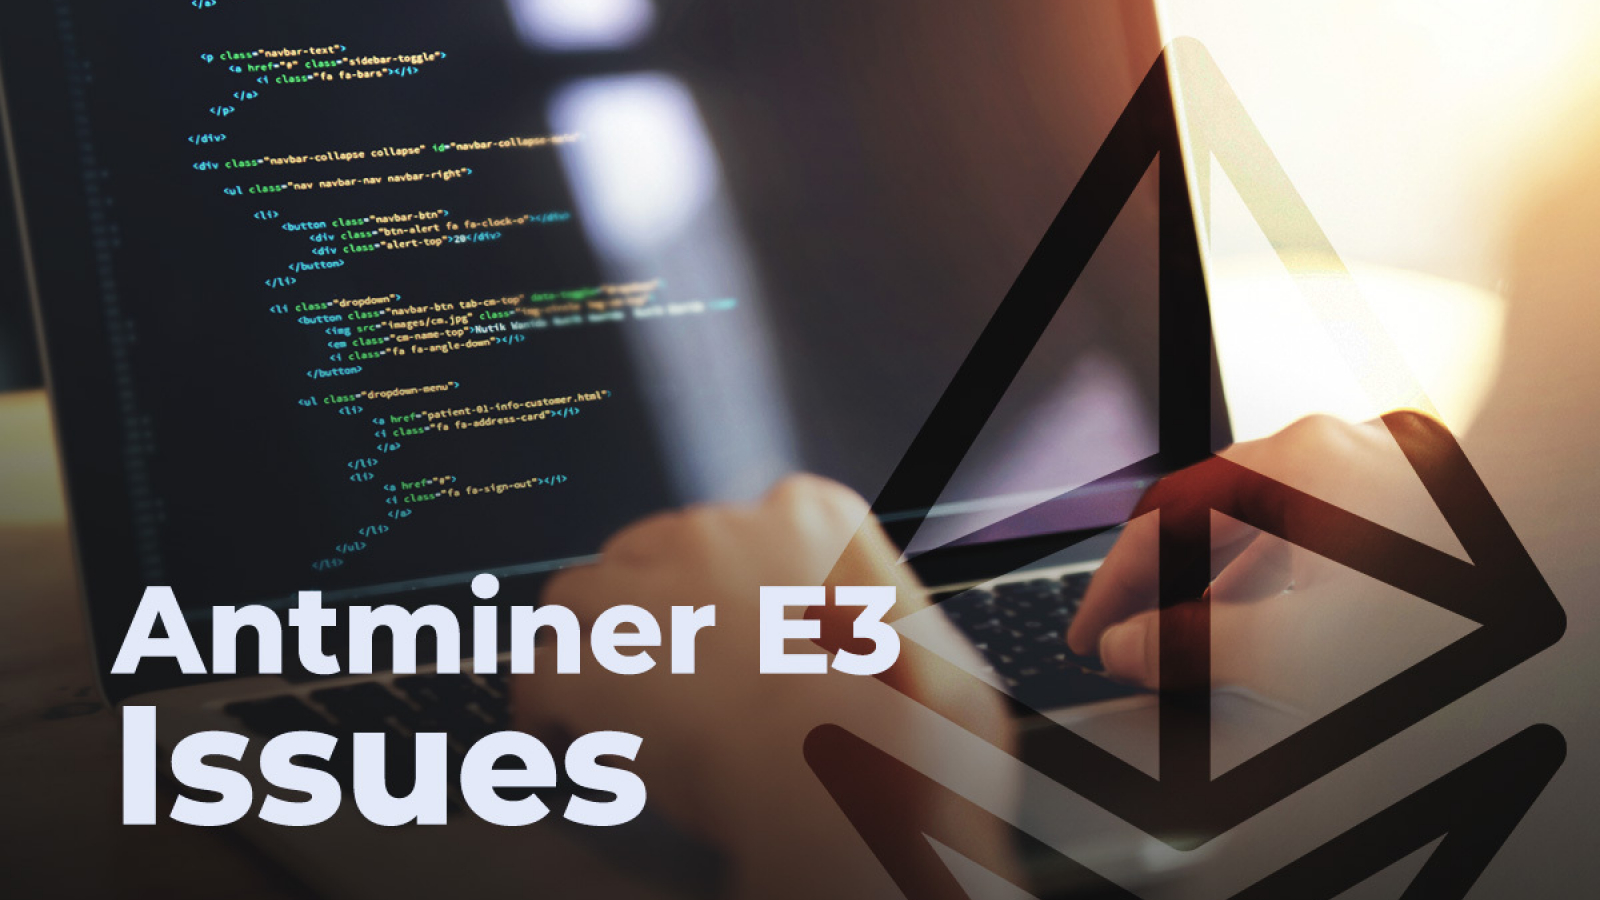 Ethereum Eth Developer Suggests Two Ways Of Solving Antminer E3 Issues 91 likes · 1 talking about this. ethereum eth developer suggests two